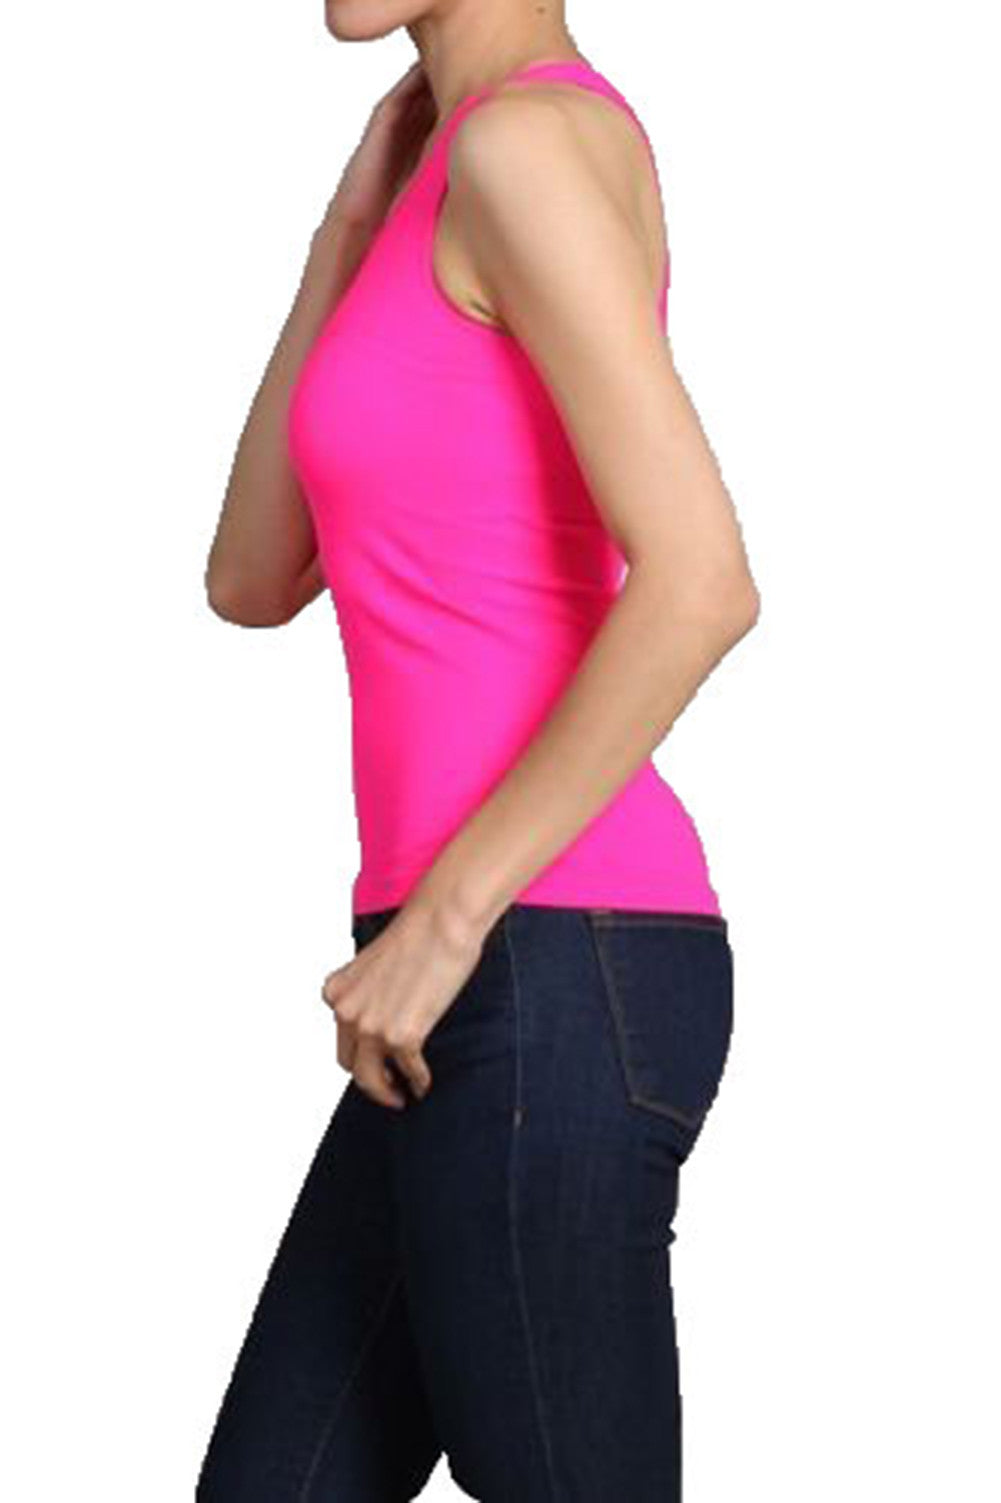 NEON SEAMLESS BASIC RIB-KNIT RACERBACK TANK TOP ONE SIZE ATHLETIC SPORT T-SHIRT - Neon Nation